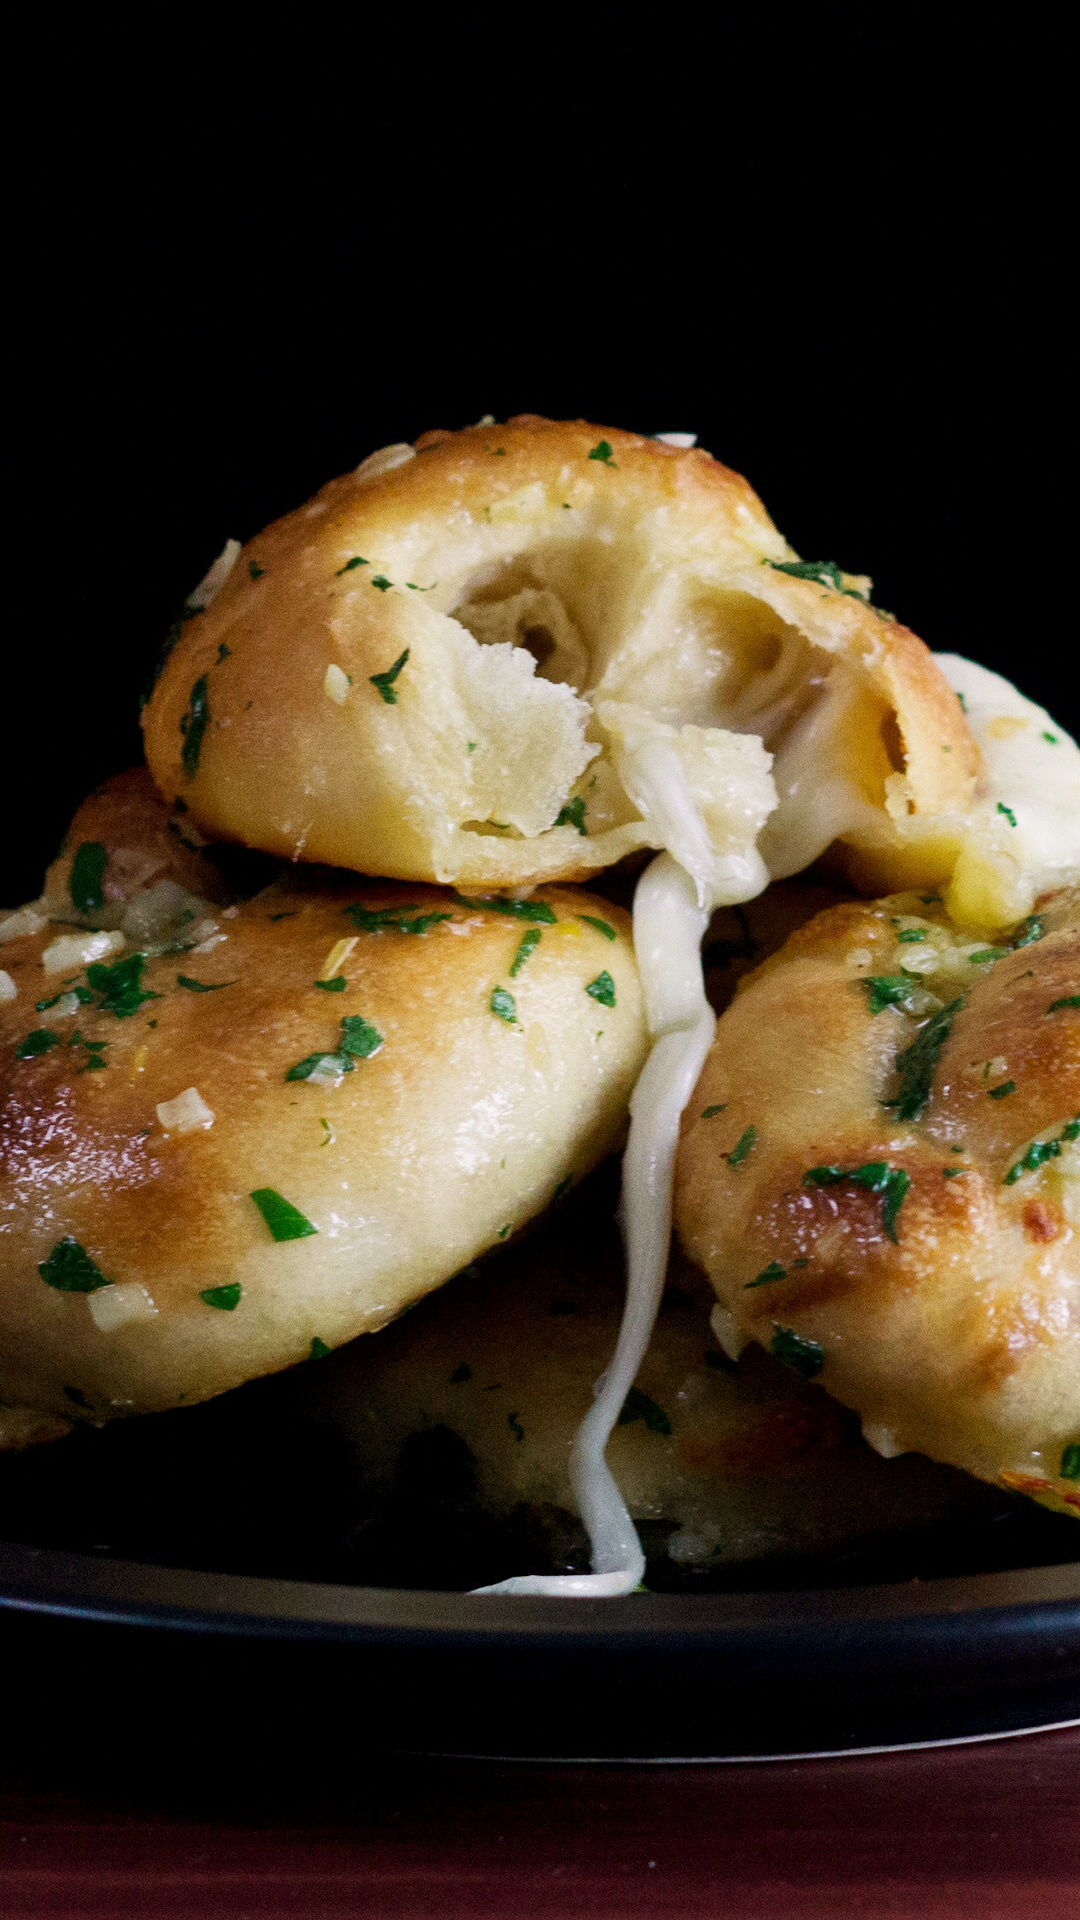 Mozzarella-Stuffed Garlic Knots